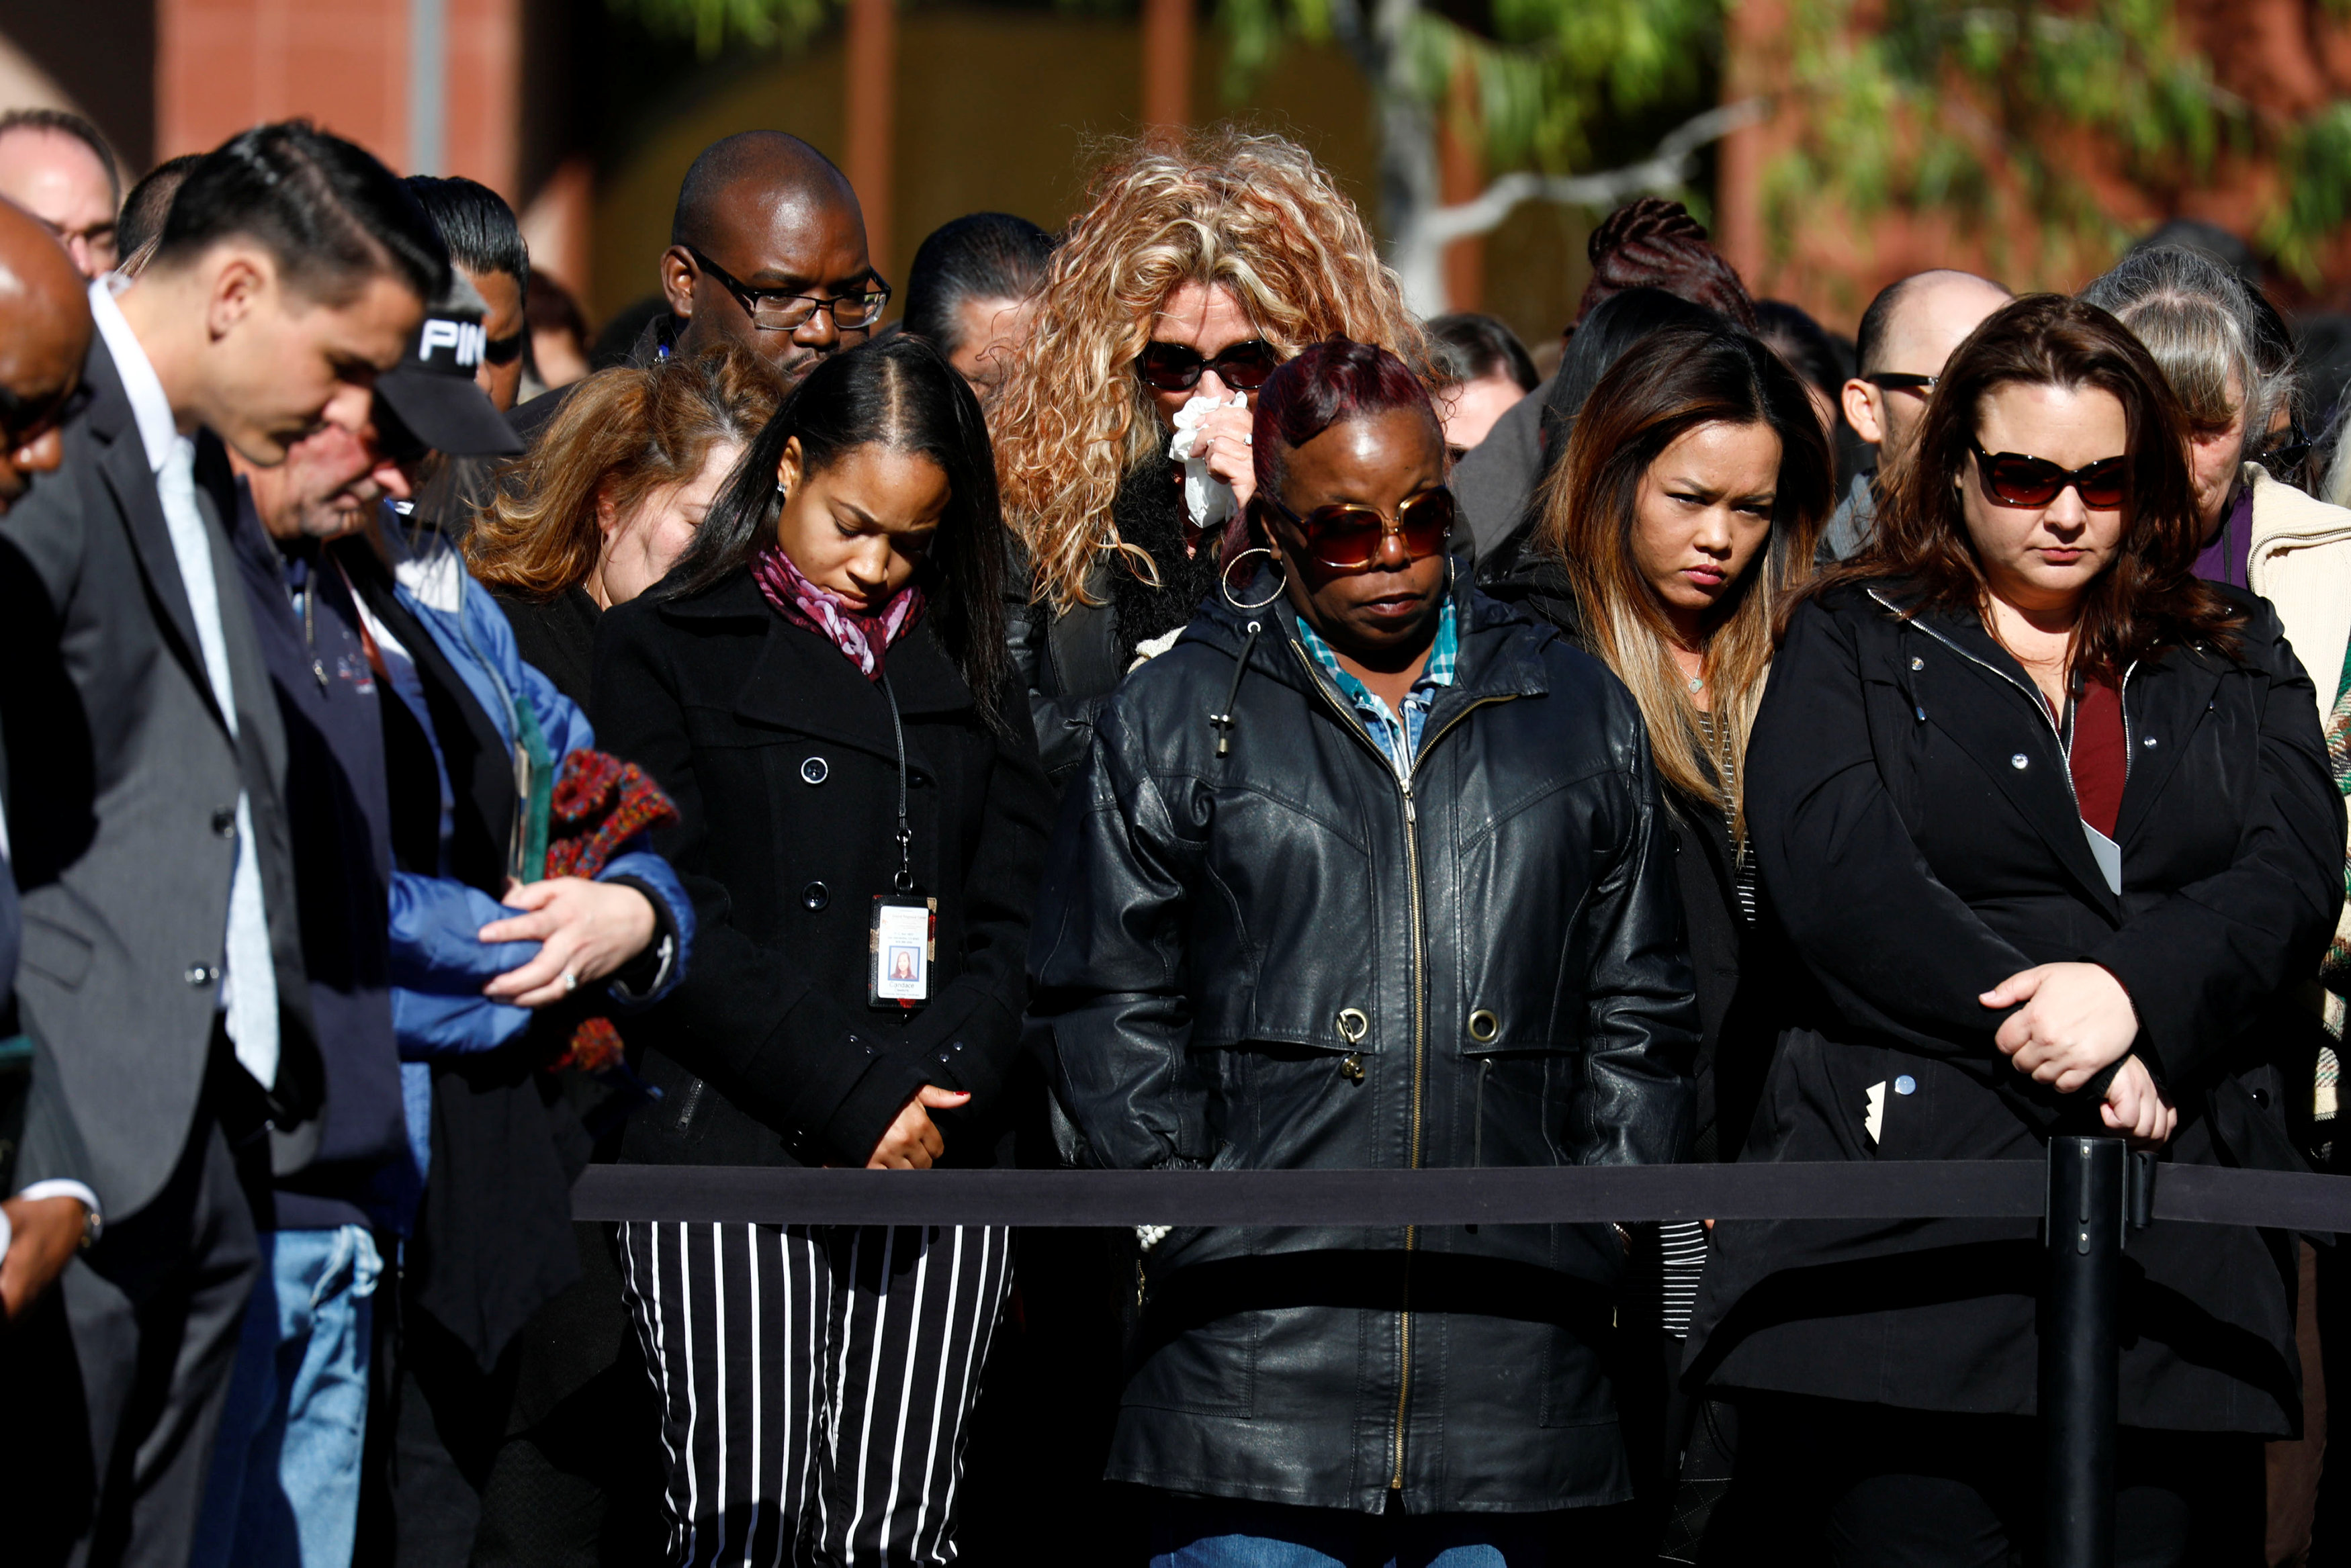 Attendees bow their heads during a memorial event at the Inland Regional Center on the one year anniversary of the San Bernardino attack in San Bernardino, California, U.S.